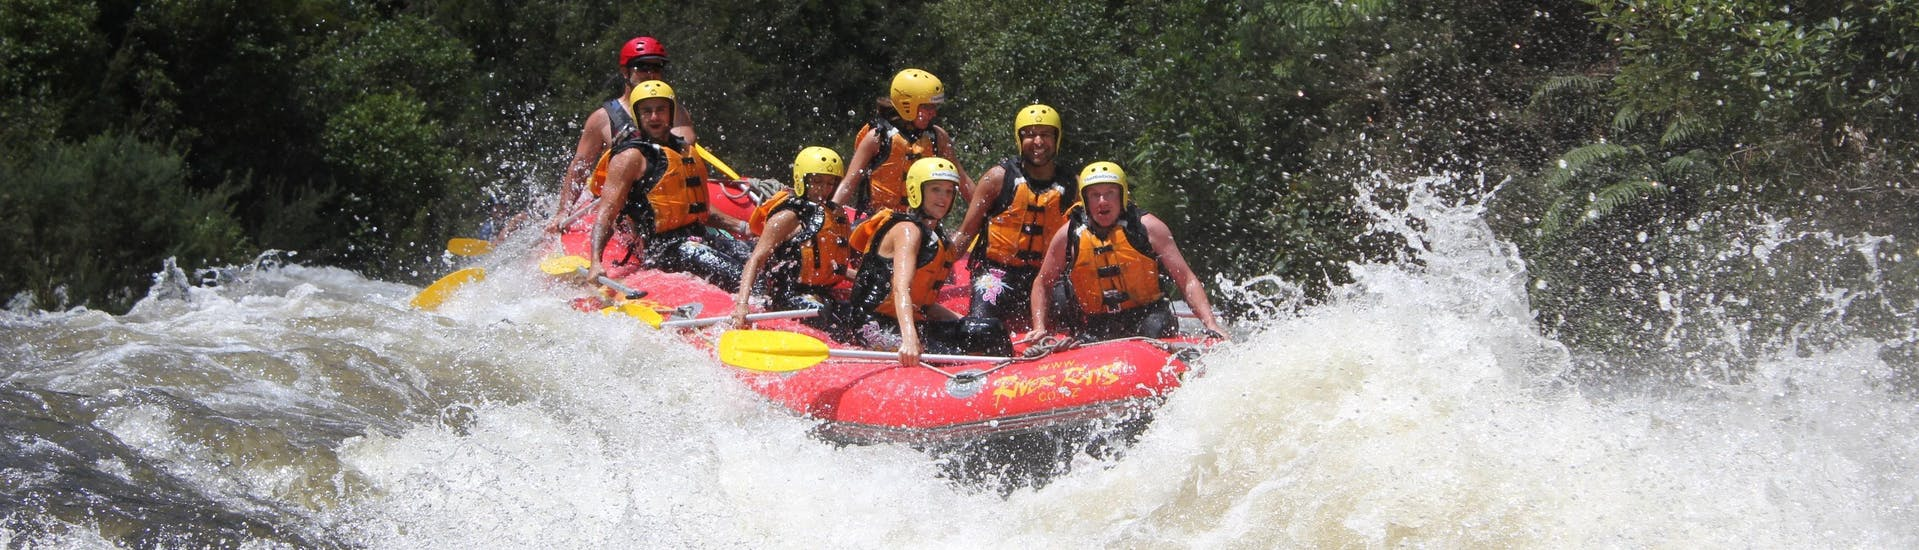 A group of rafters fights their way through the rapids and enjoys the view during the rotorua rafting pure new zealand - rangitaiki river tour with River Rats Rotorua Raft & Kayak.